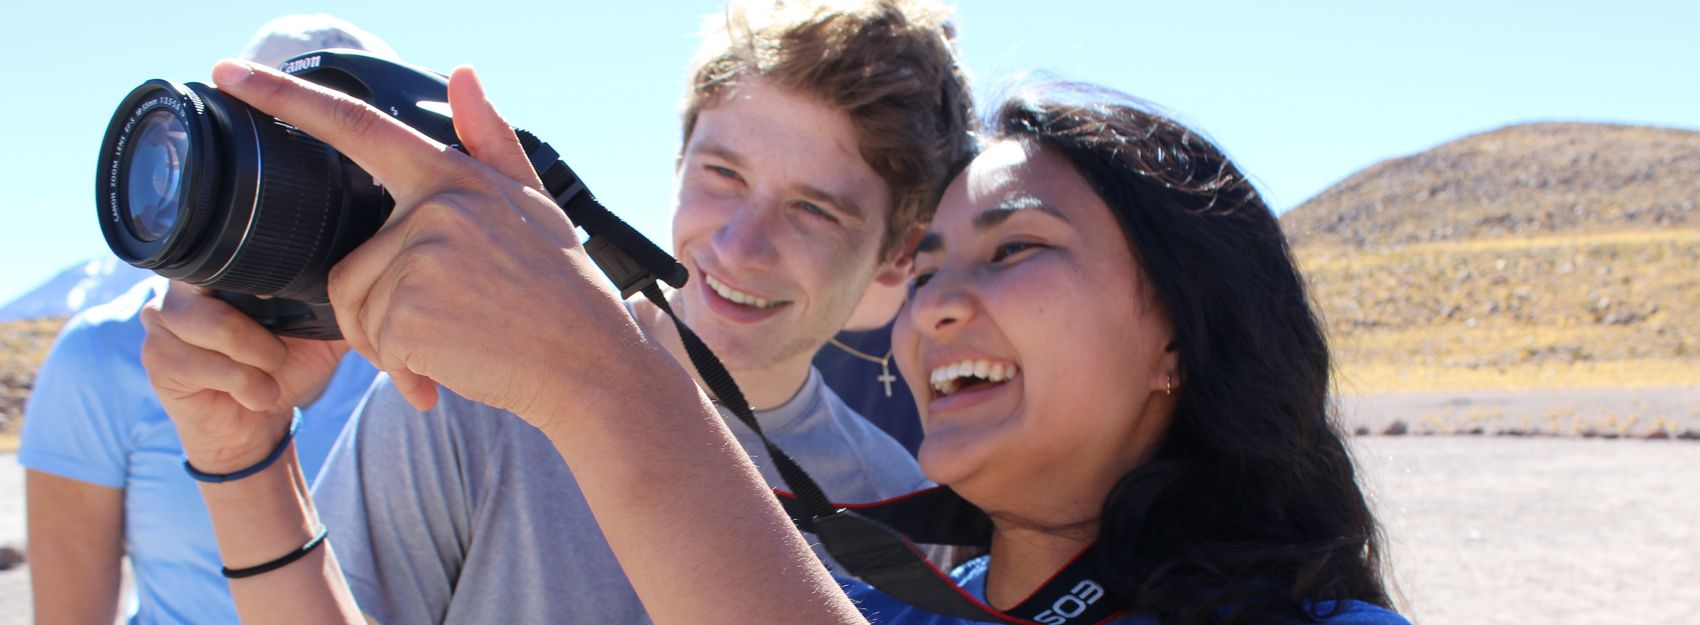 two students outside using camera